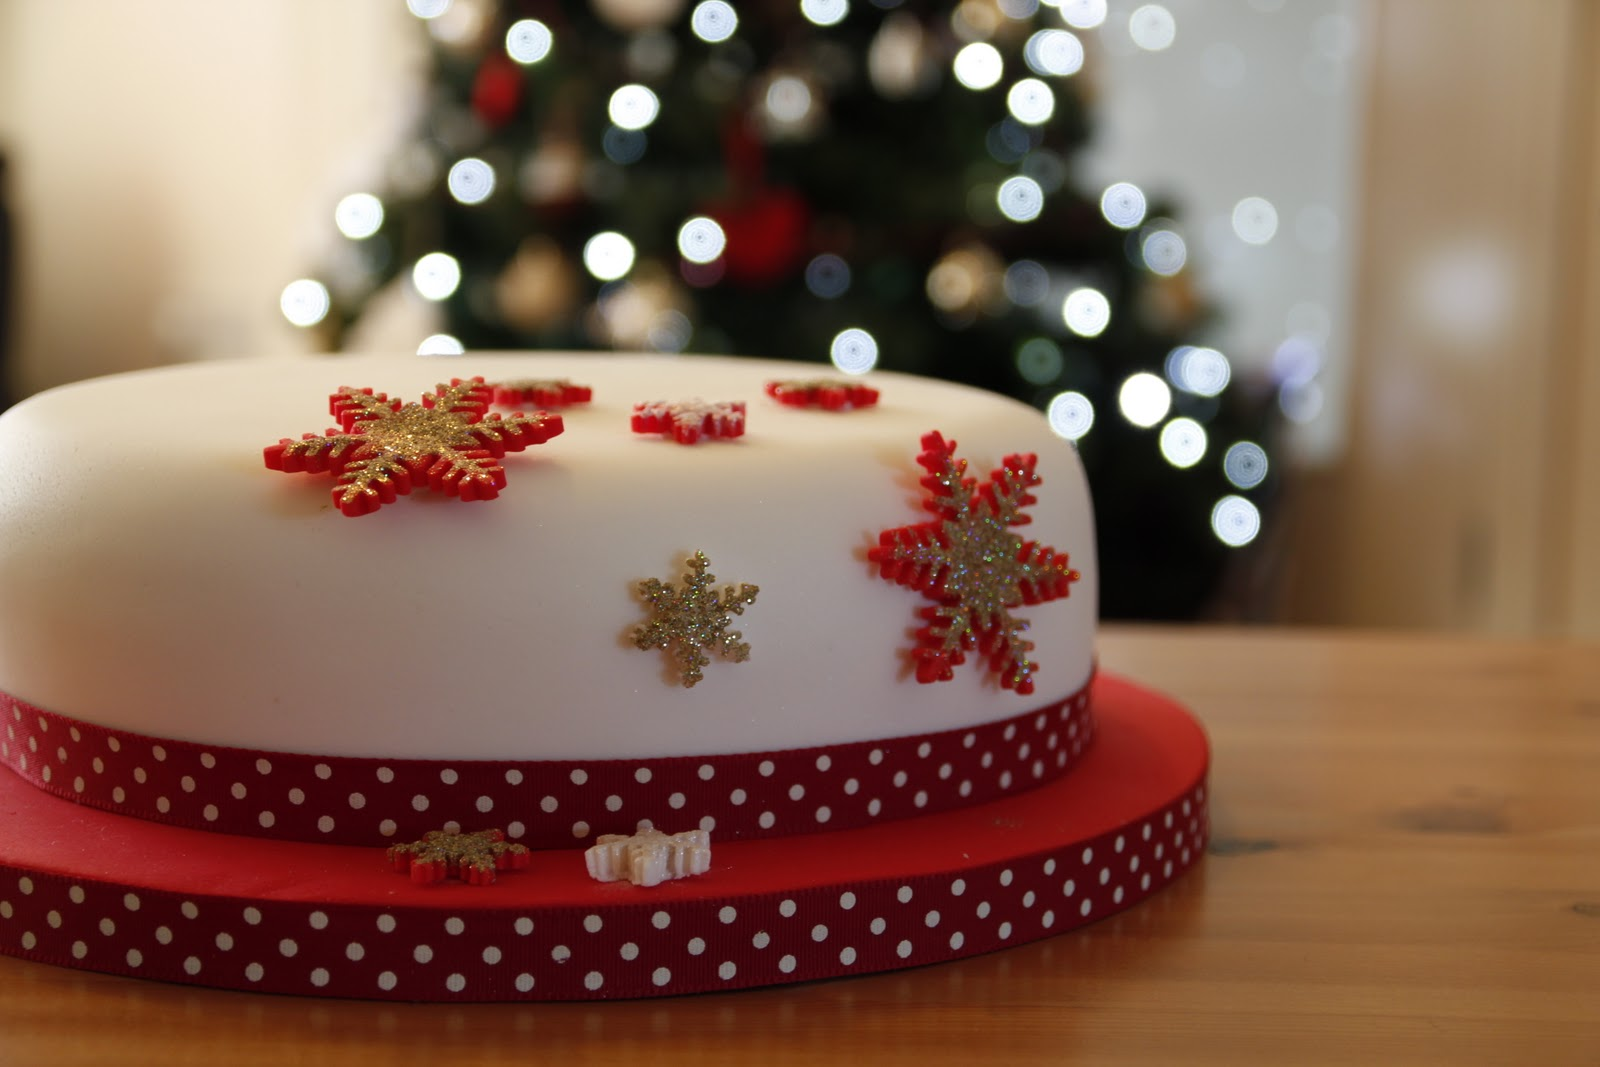 Cross My Apple Tart Icing A Round Christmas Cake With